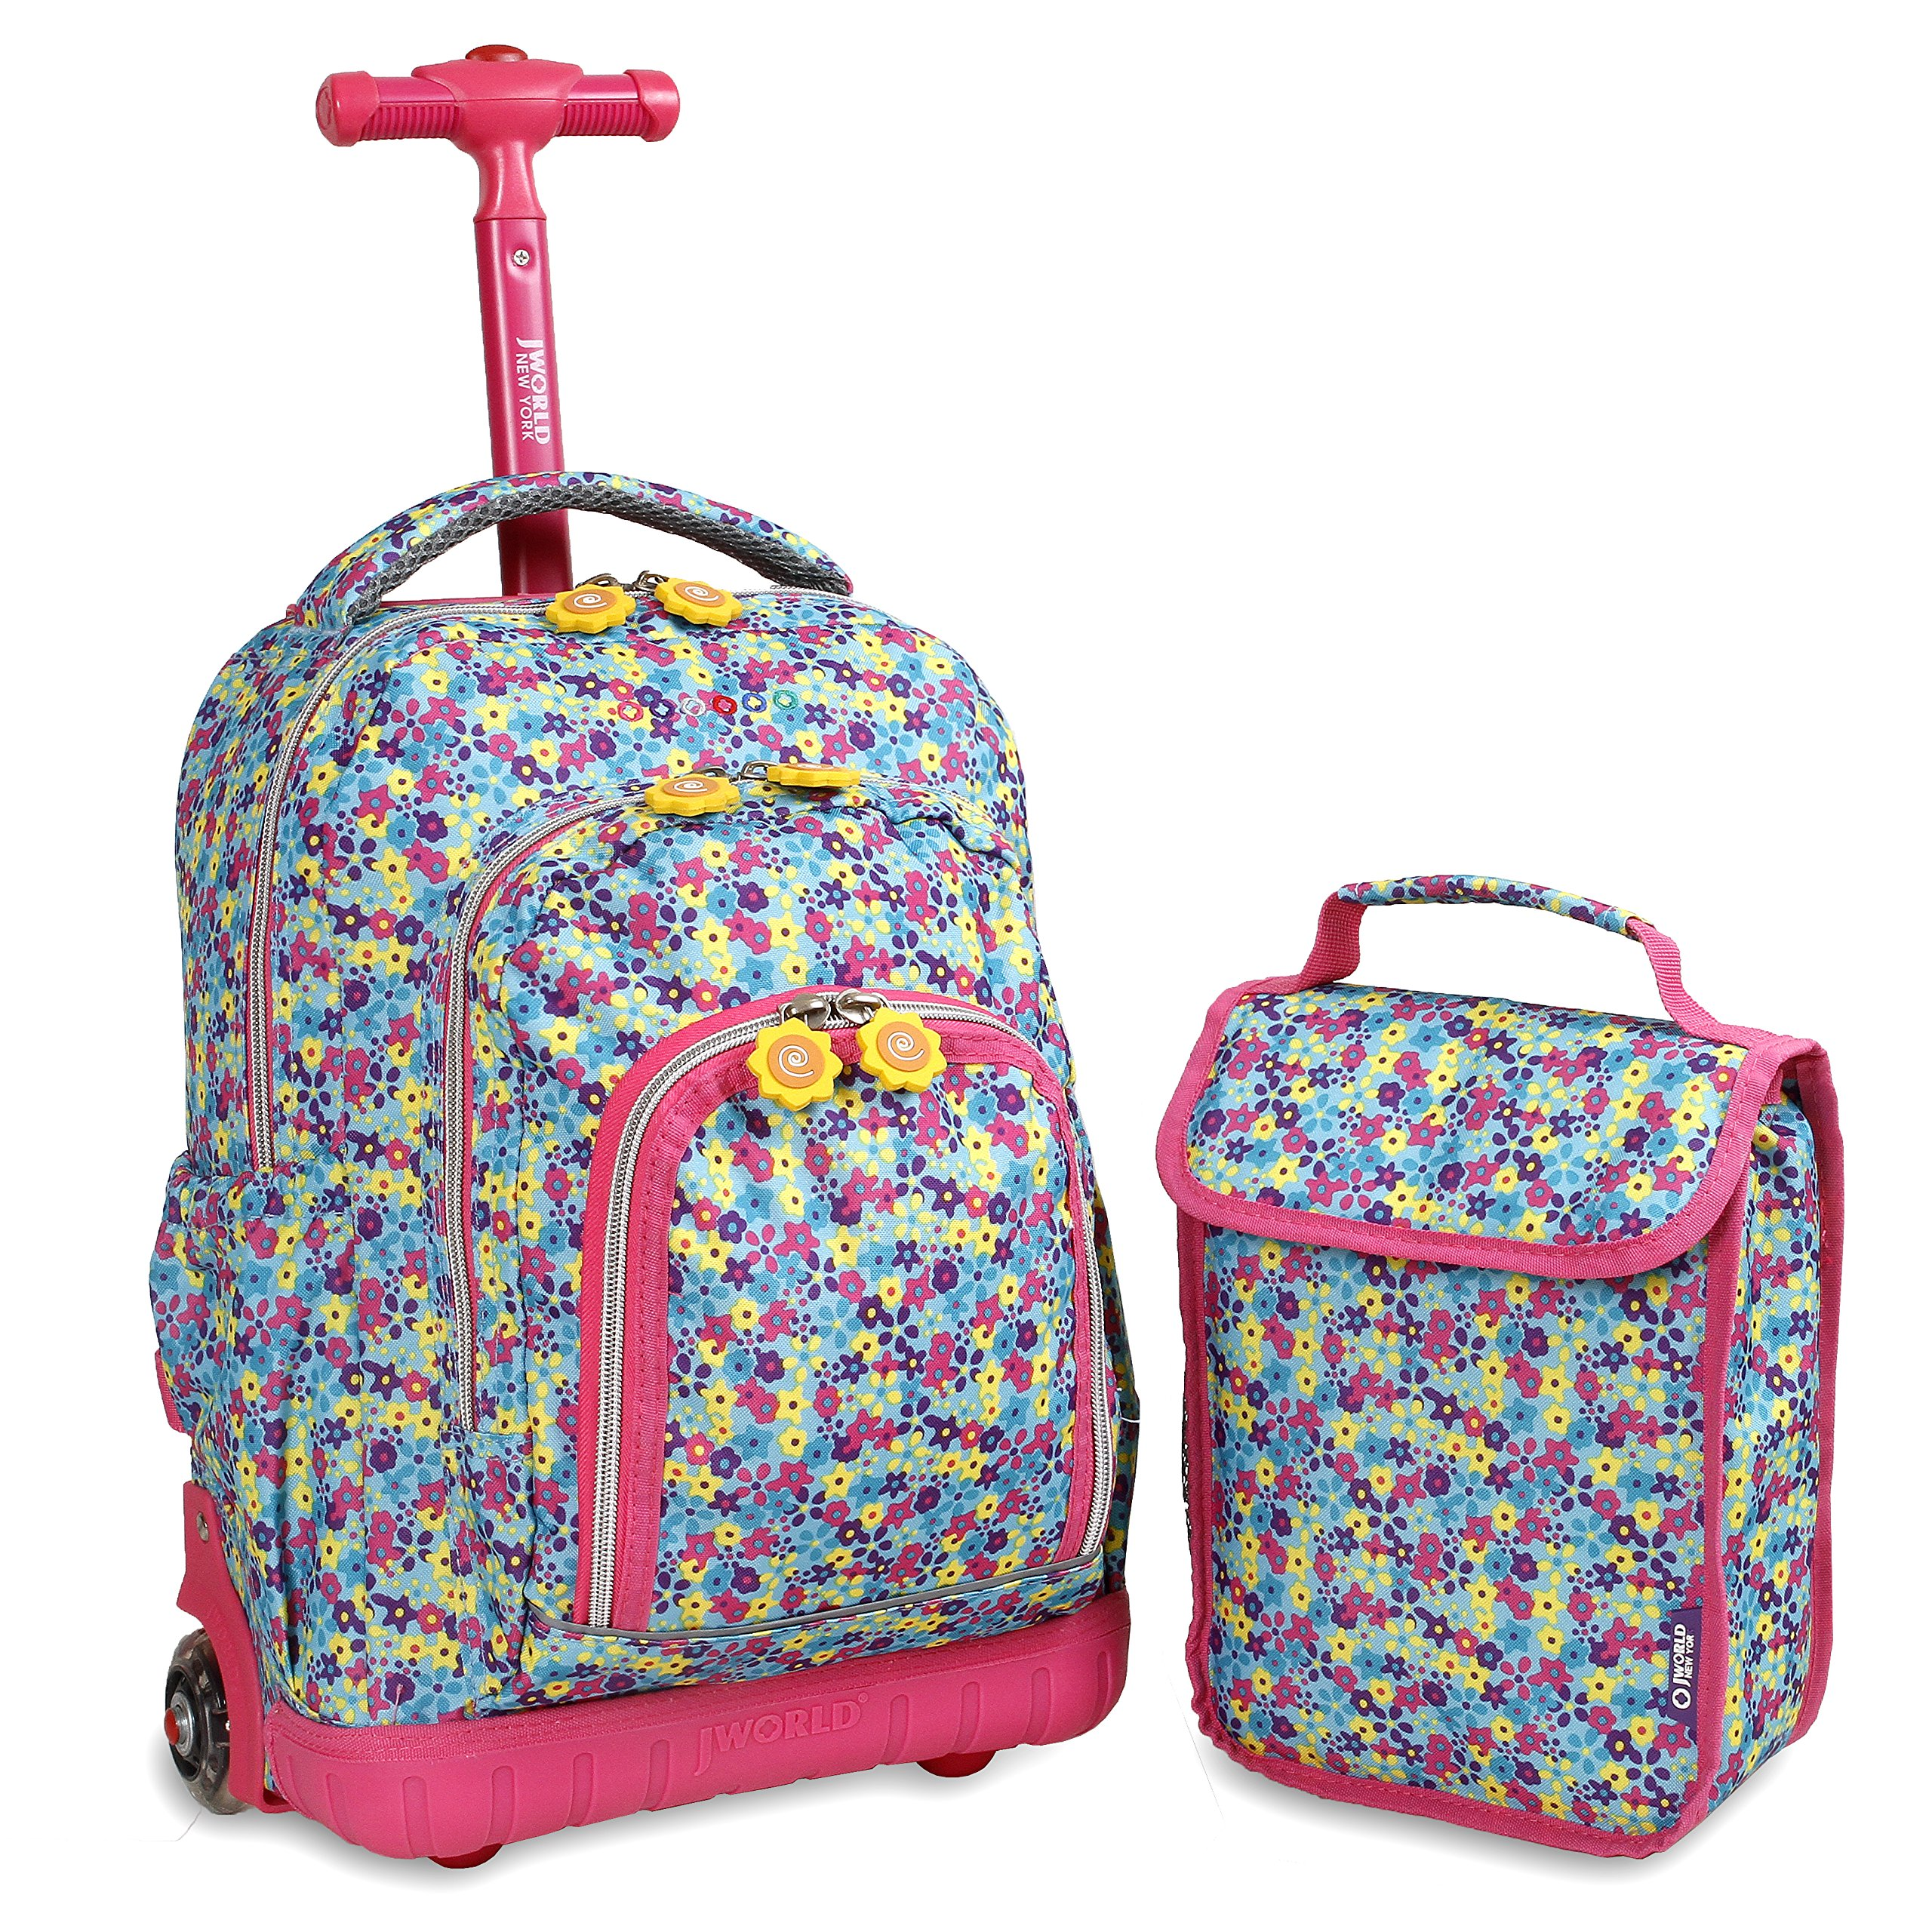 J World New York Boys' Lollipop Rolling Lunch Bag Kid's Backpack with Self-Magnetic Sparkling Wheel and'FREE'Lunch, Floret